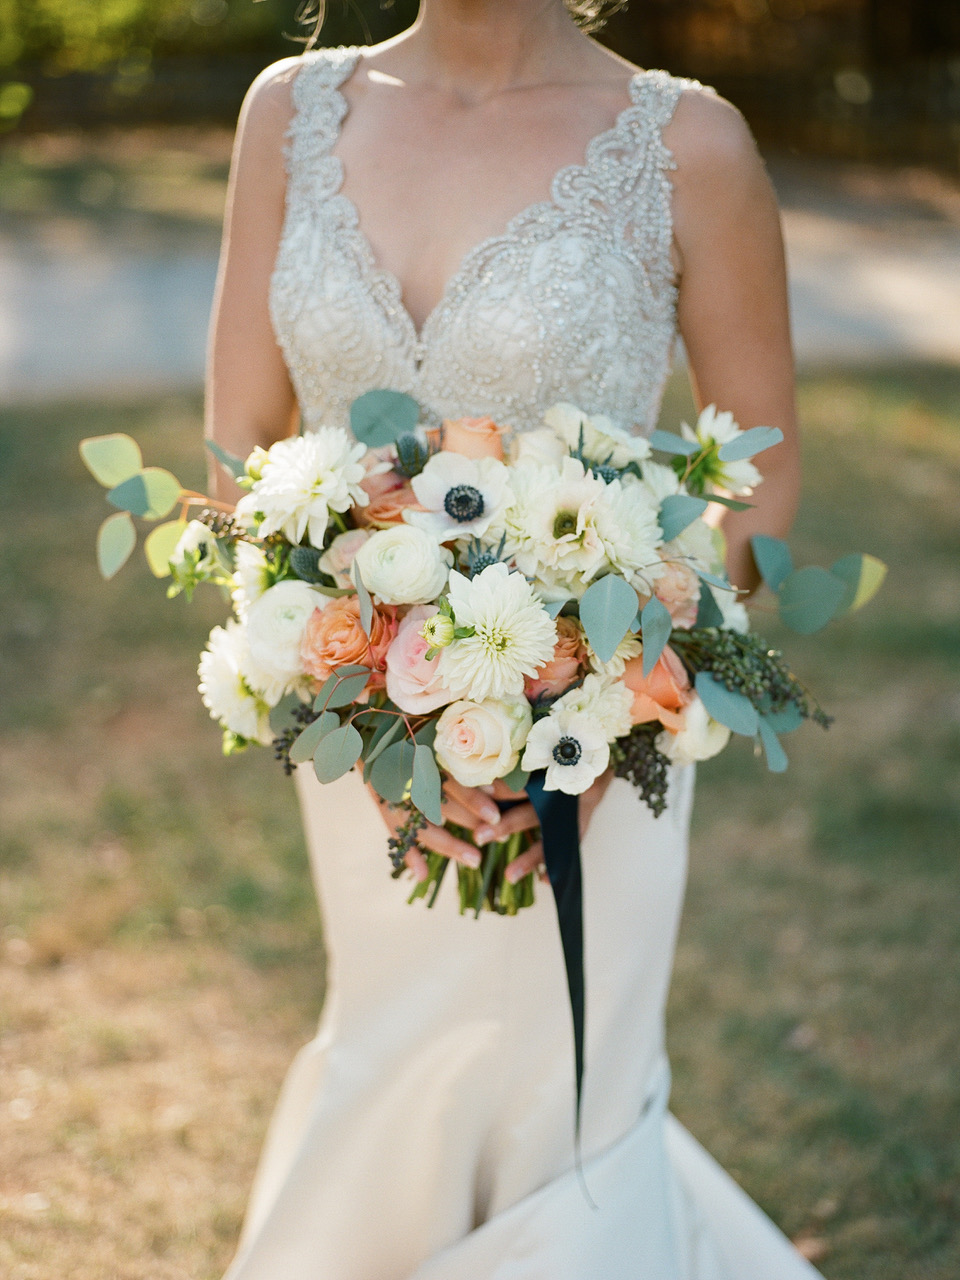 Peaches and Cream Bridal Bouquet featuring white anemones, peach roses, white ranunculus, white dahlias, privet berry and silver dollar eucalyptus. | Flowers by Flower Buds. Photo by Davy Whitener Photography. Venue The Ruins at Kellum Valley Farm